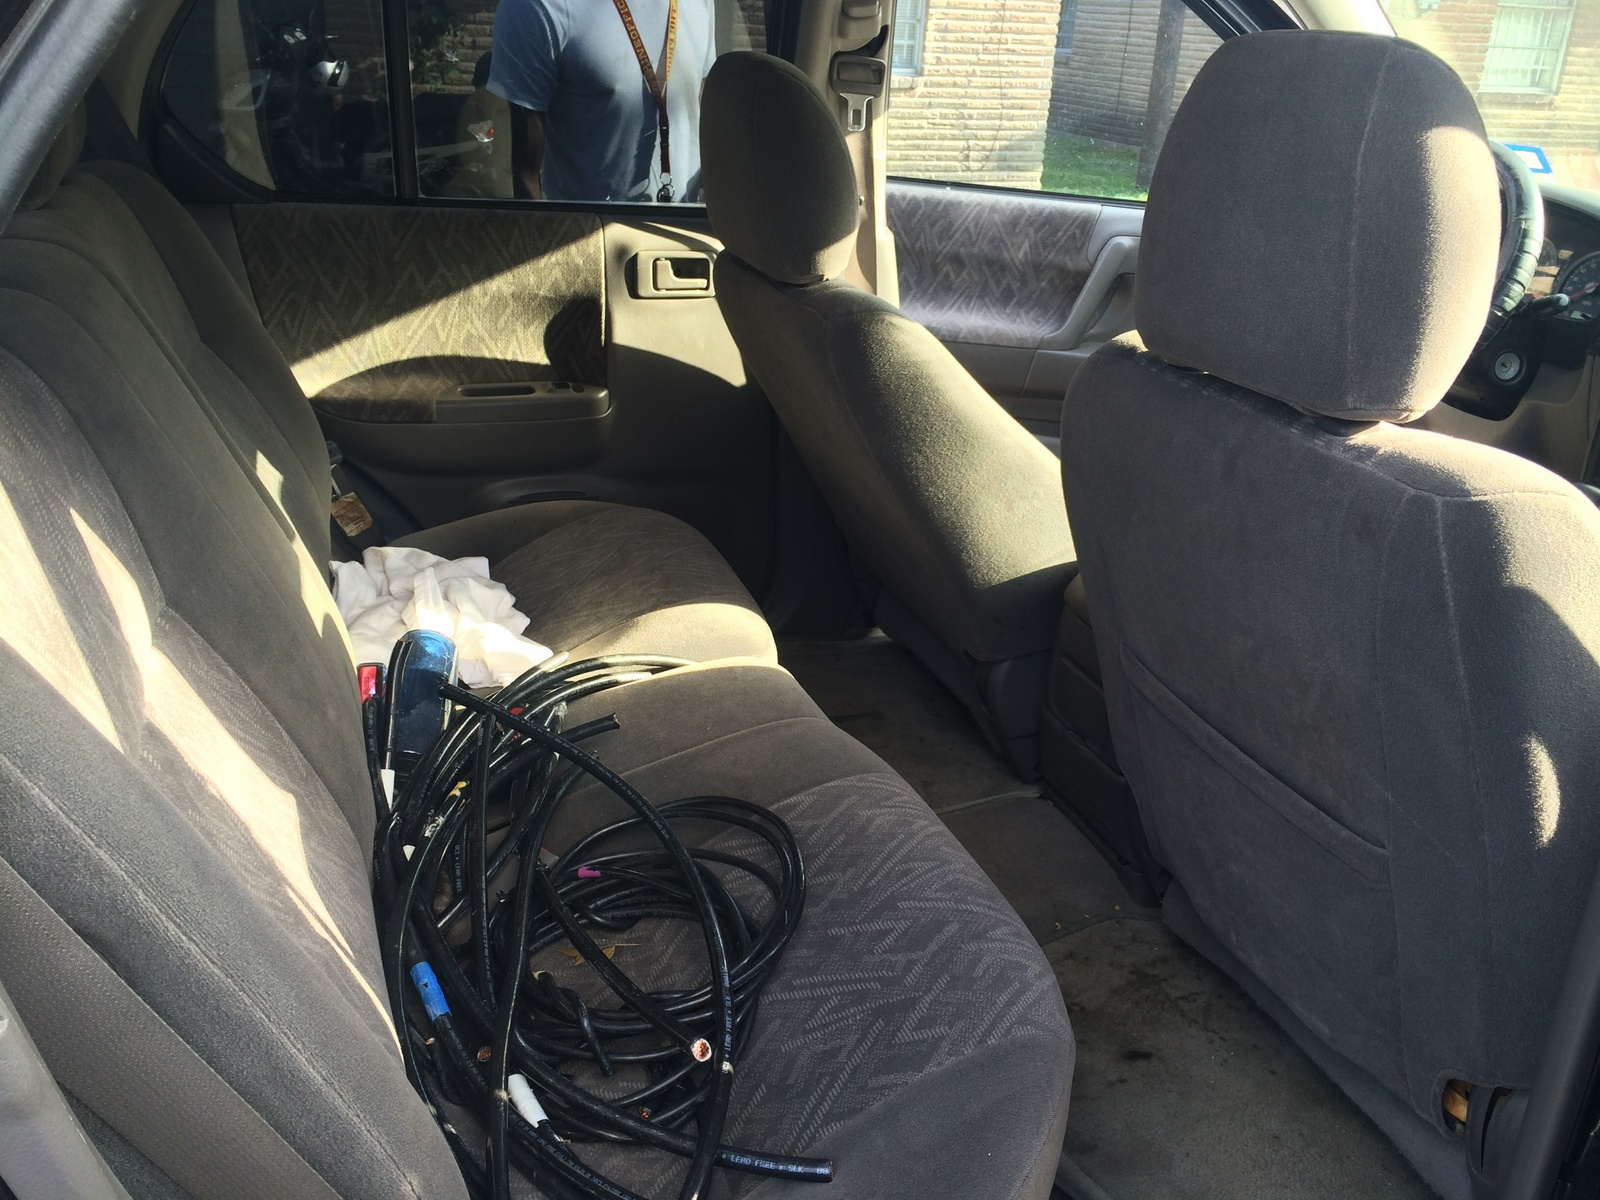 Picture of 2004 Isuzu Rodeo 3.5 S, interior